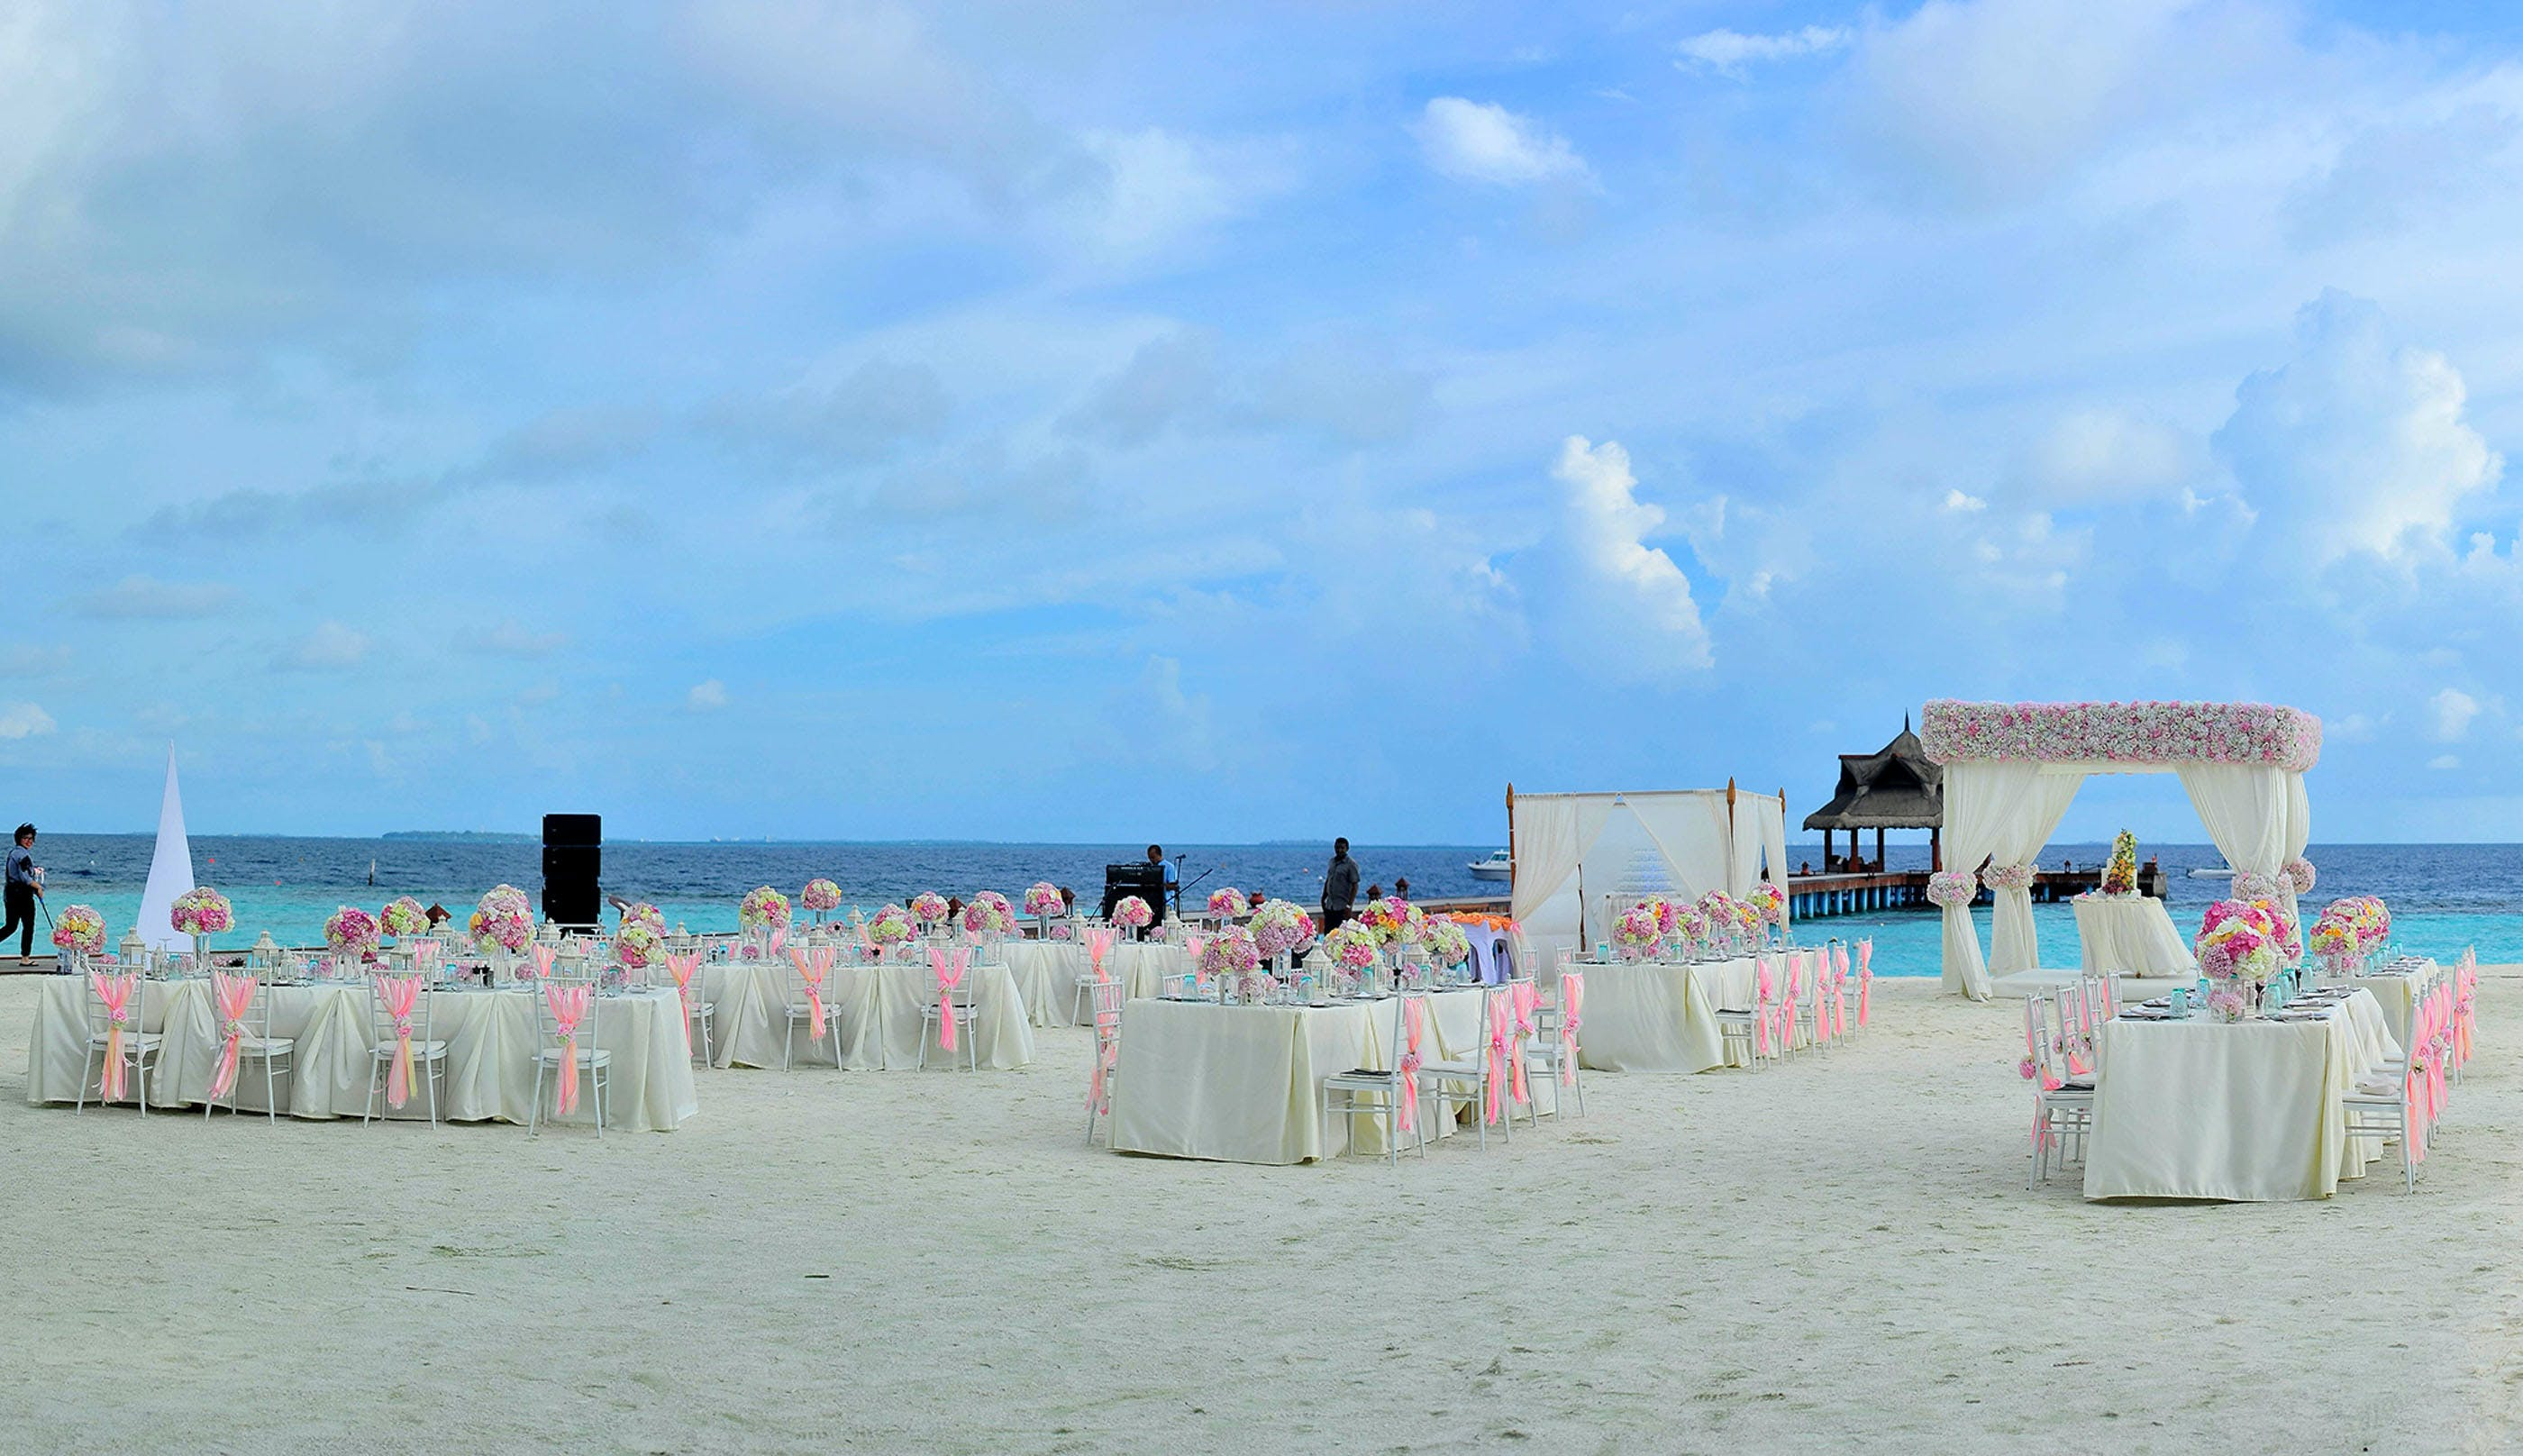 Covered Tables on Beach